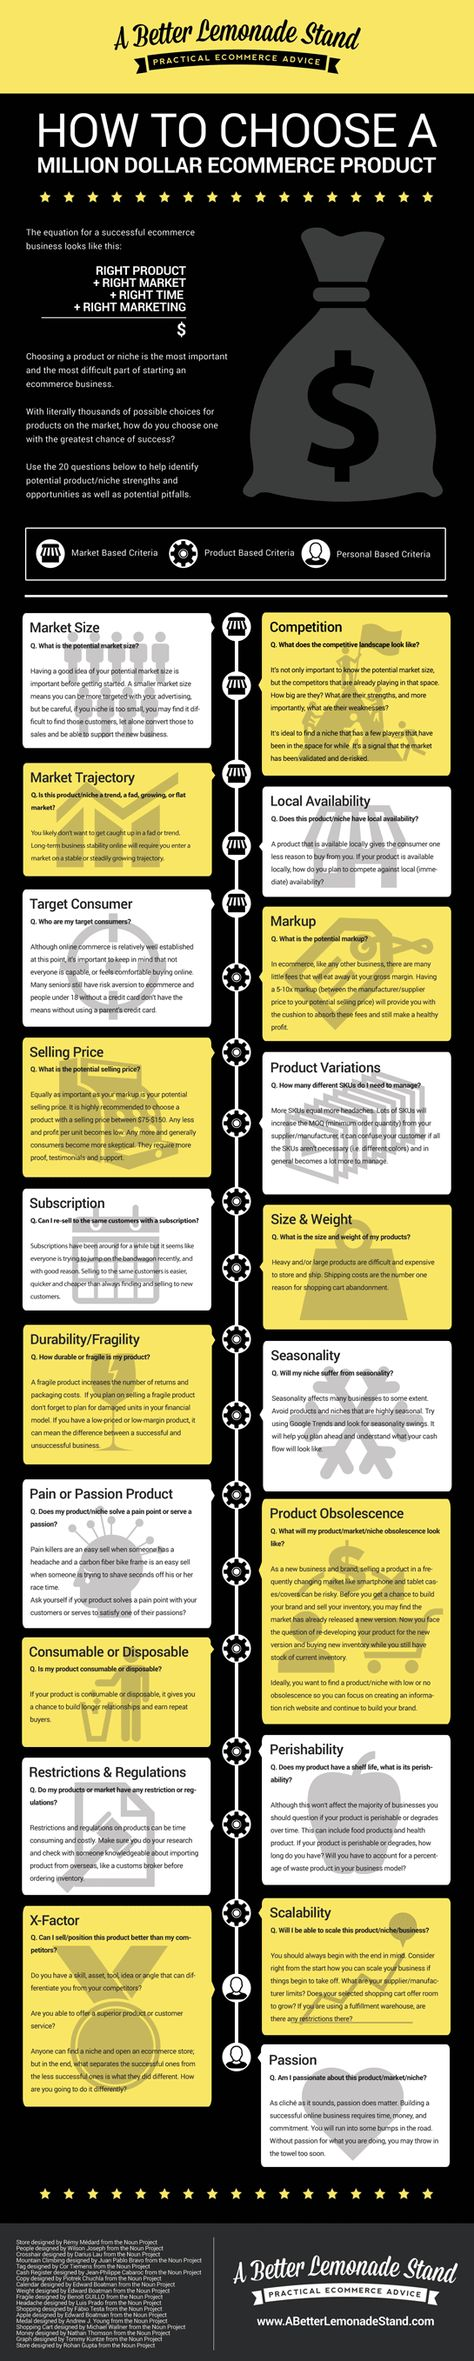 How to Choose Products to Sell Online: An Infographic